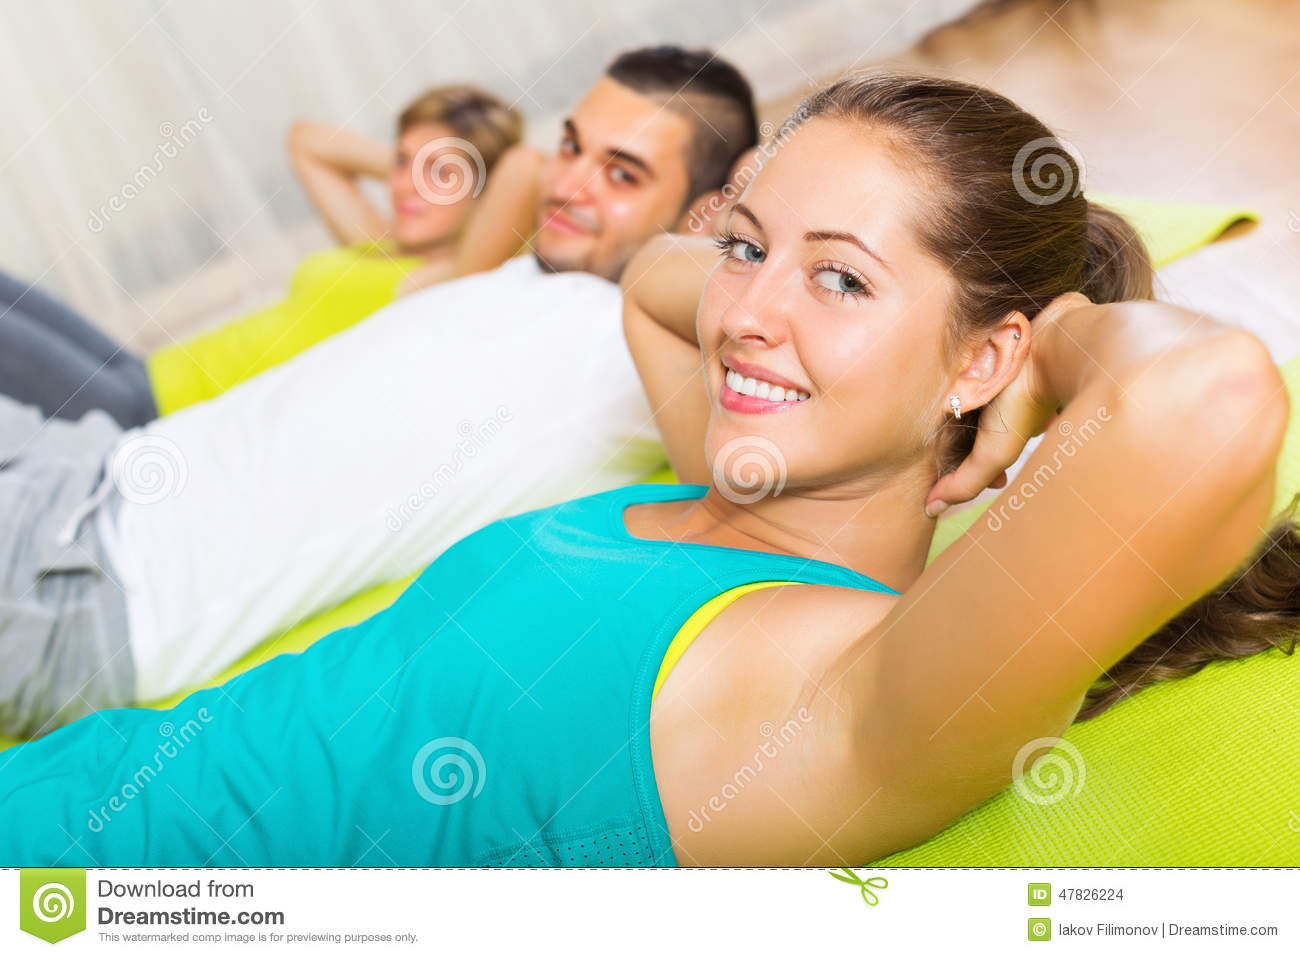 Adult people working in gym